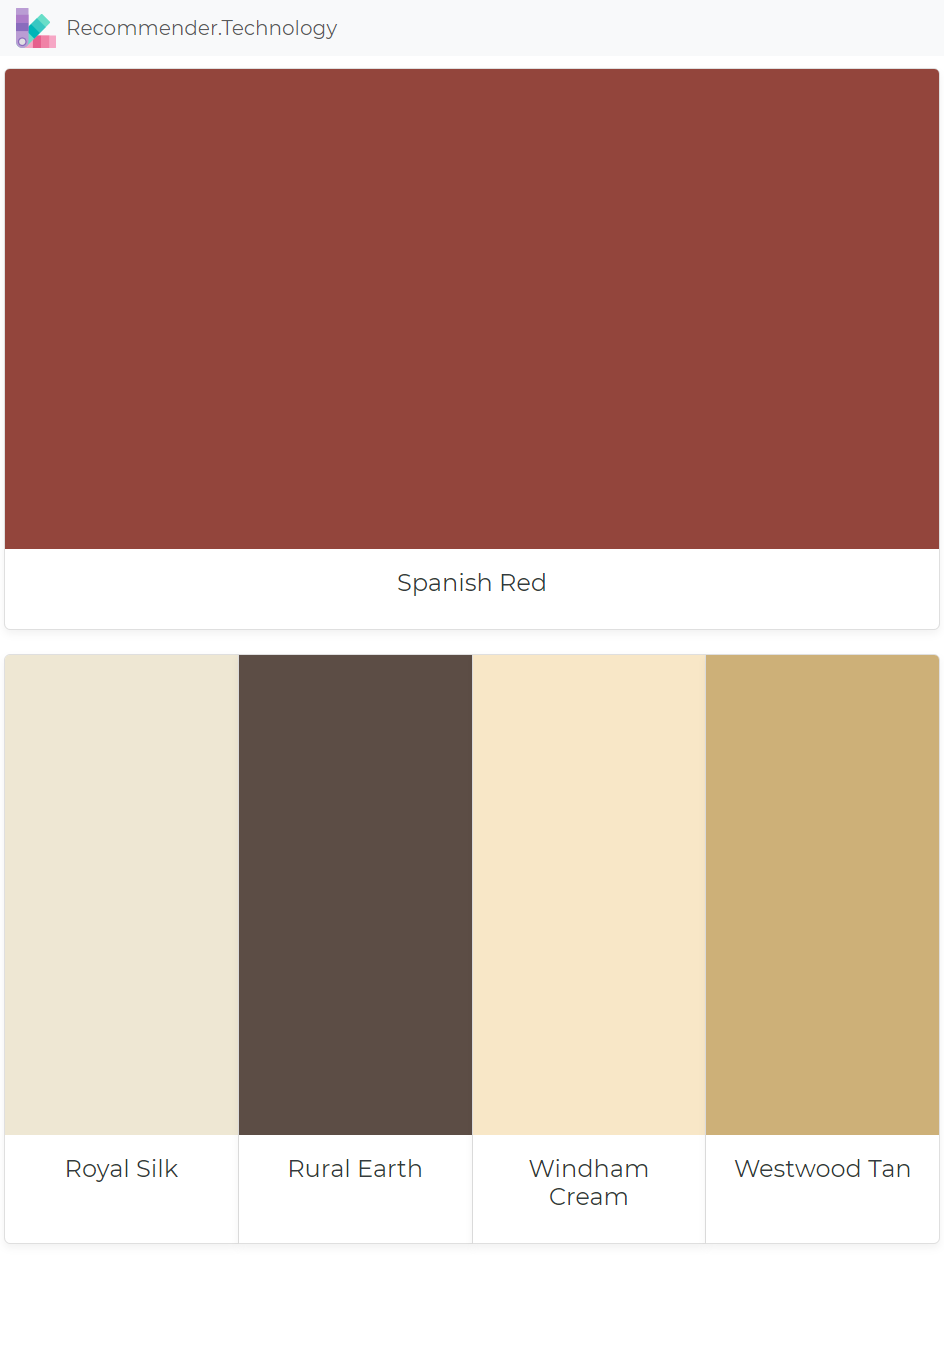 Spanish Red Royal Silk Rural Earth Windham Cream Westwood Tan Paint Color